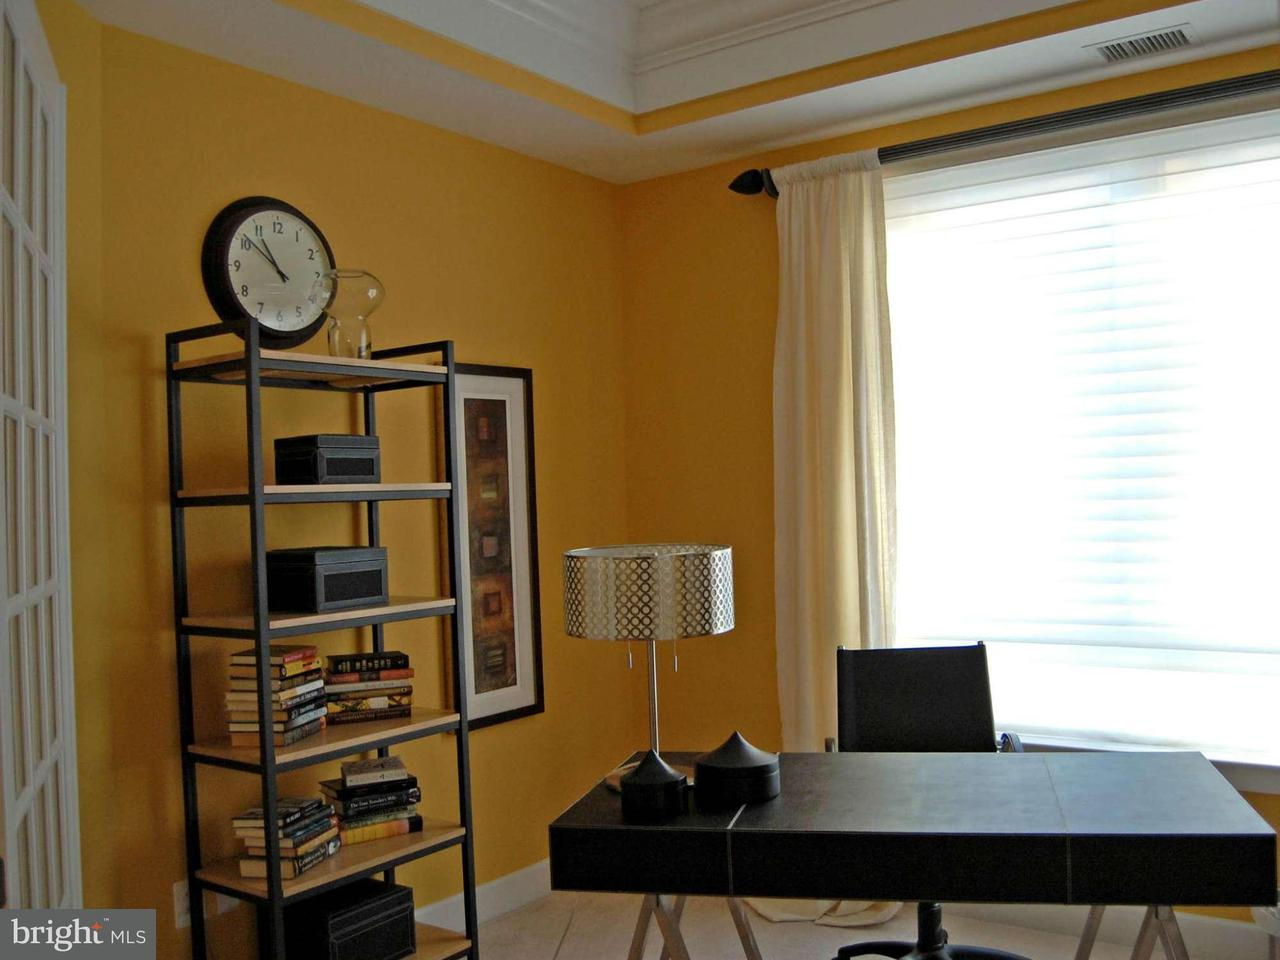 Additional photo for property listing at 1915 TOWNE CENTRE BLVD #206 1915 TOWNE CENTRE BLVD #206 Annapolis, Maryland 21401 United States